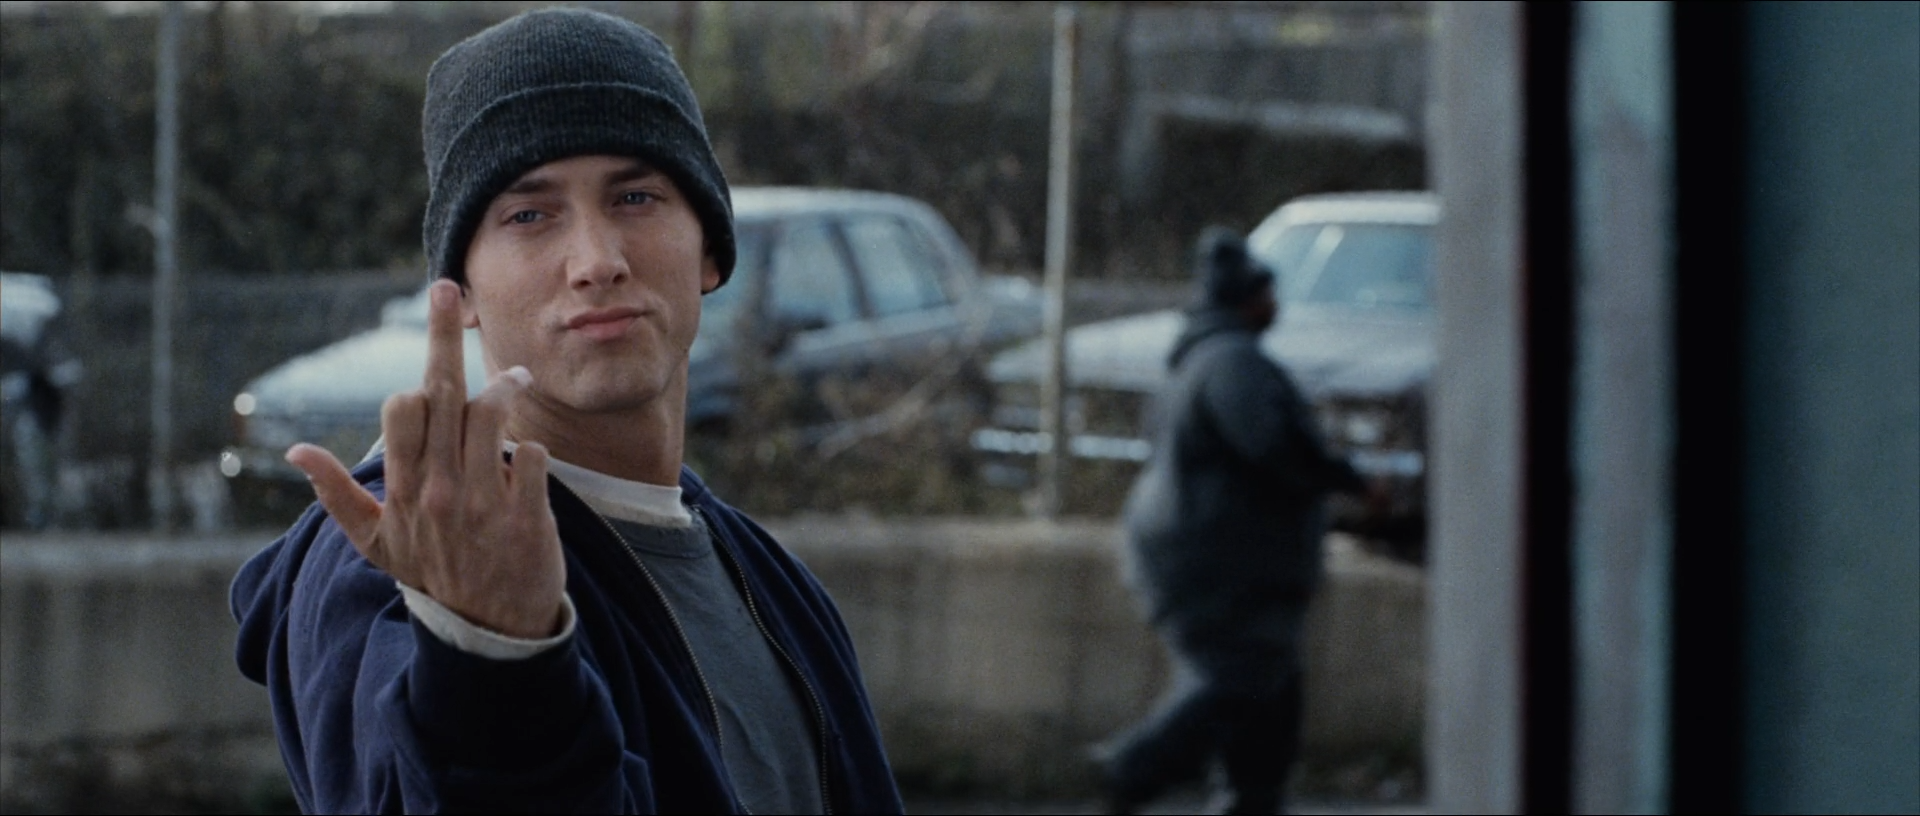 8 mile Music from and inspired by the motion picture 8 mile is the official music soundtrack to the 2002 movie 8 mile, starring eminem, who features on five of the tracks on.